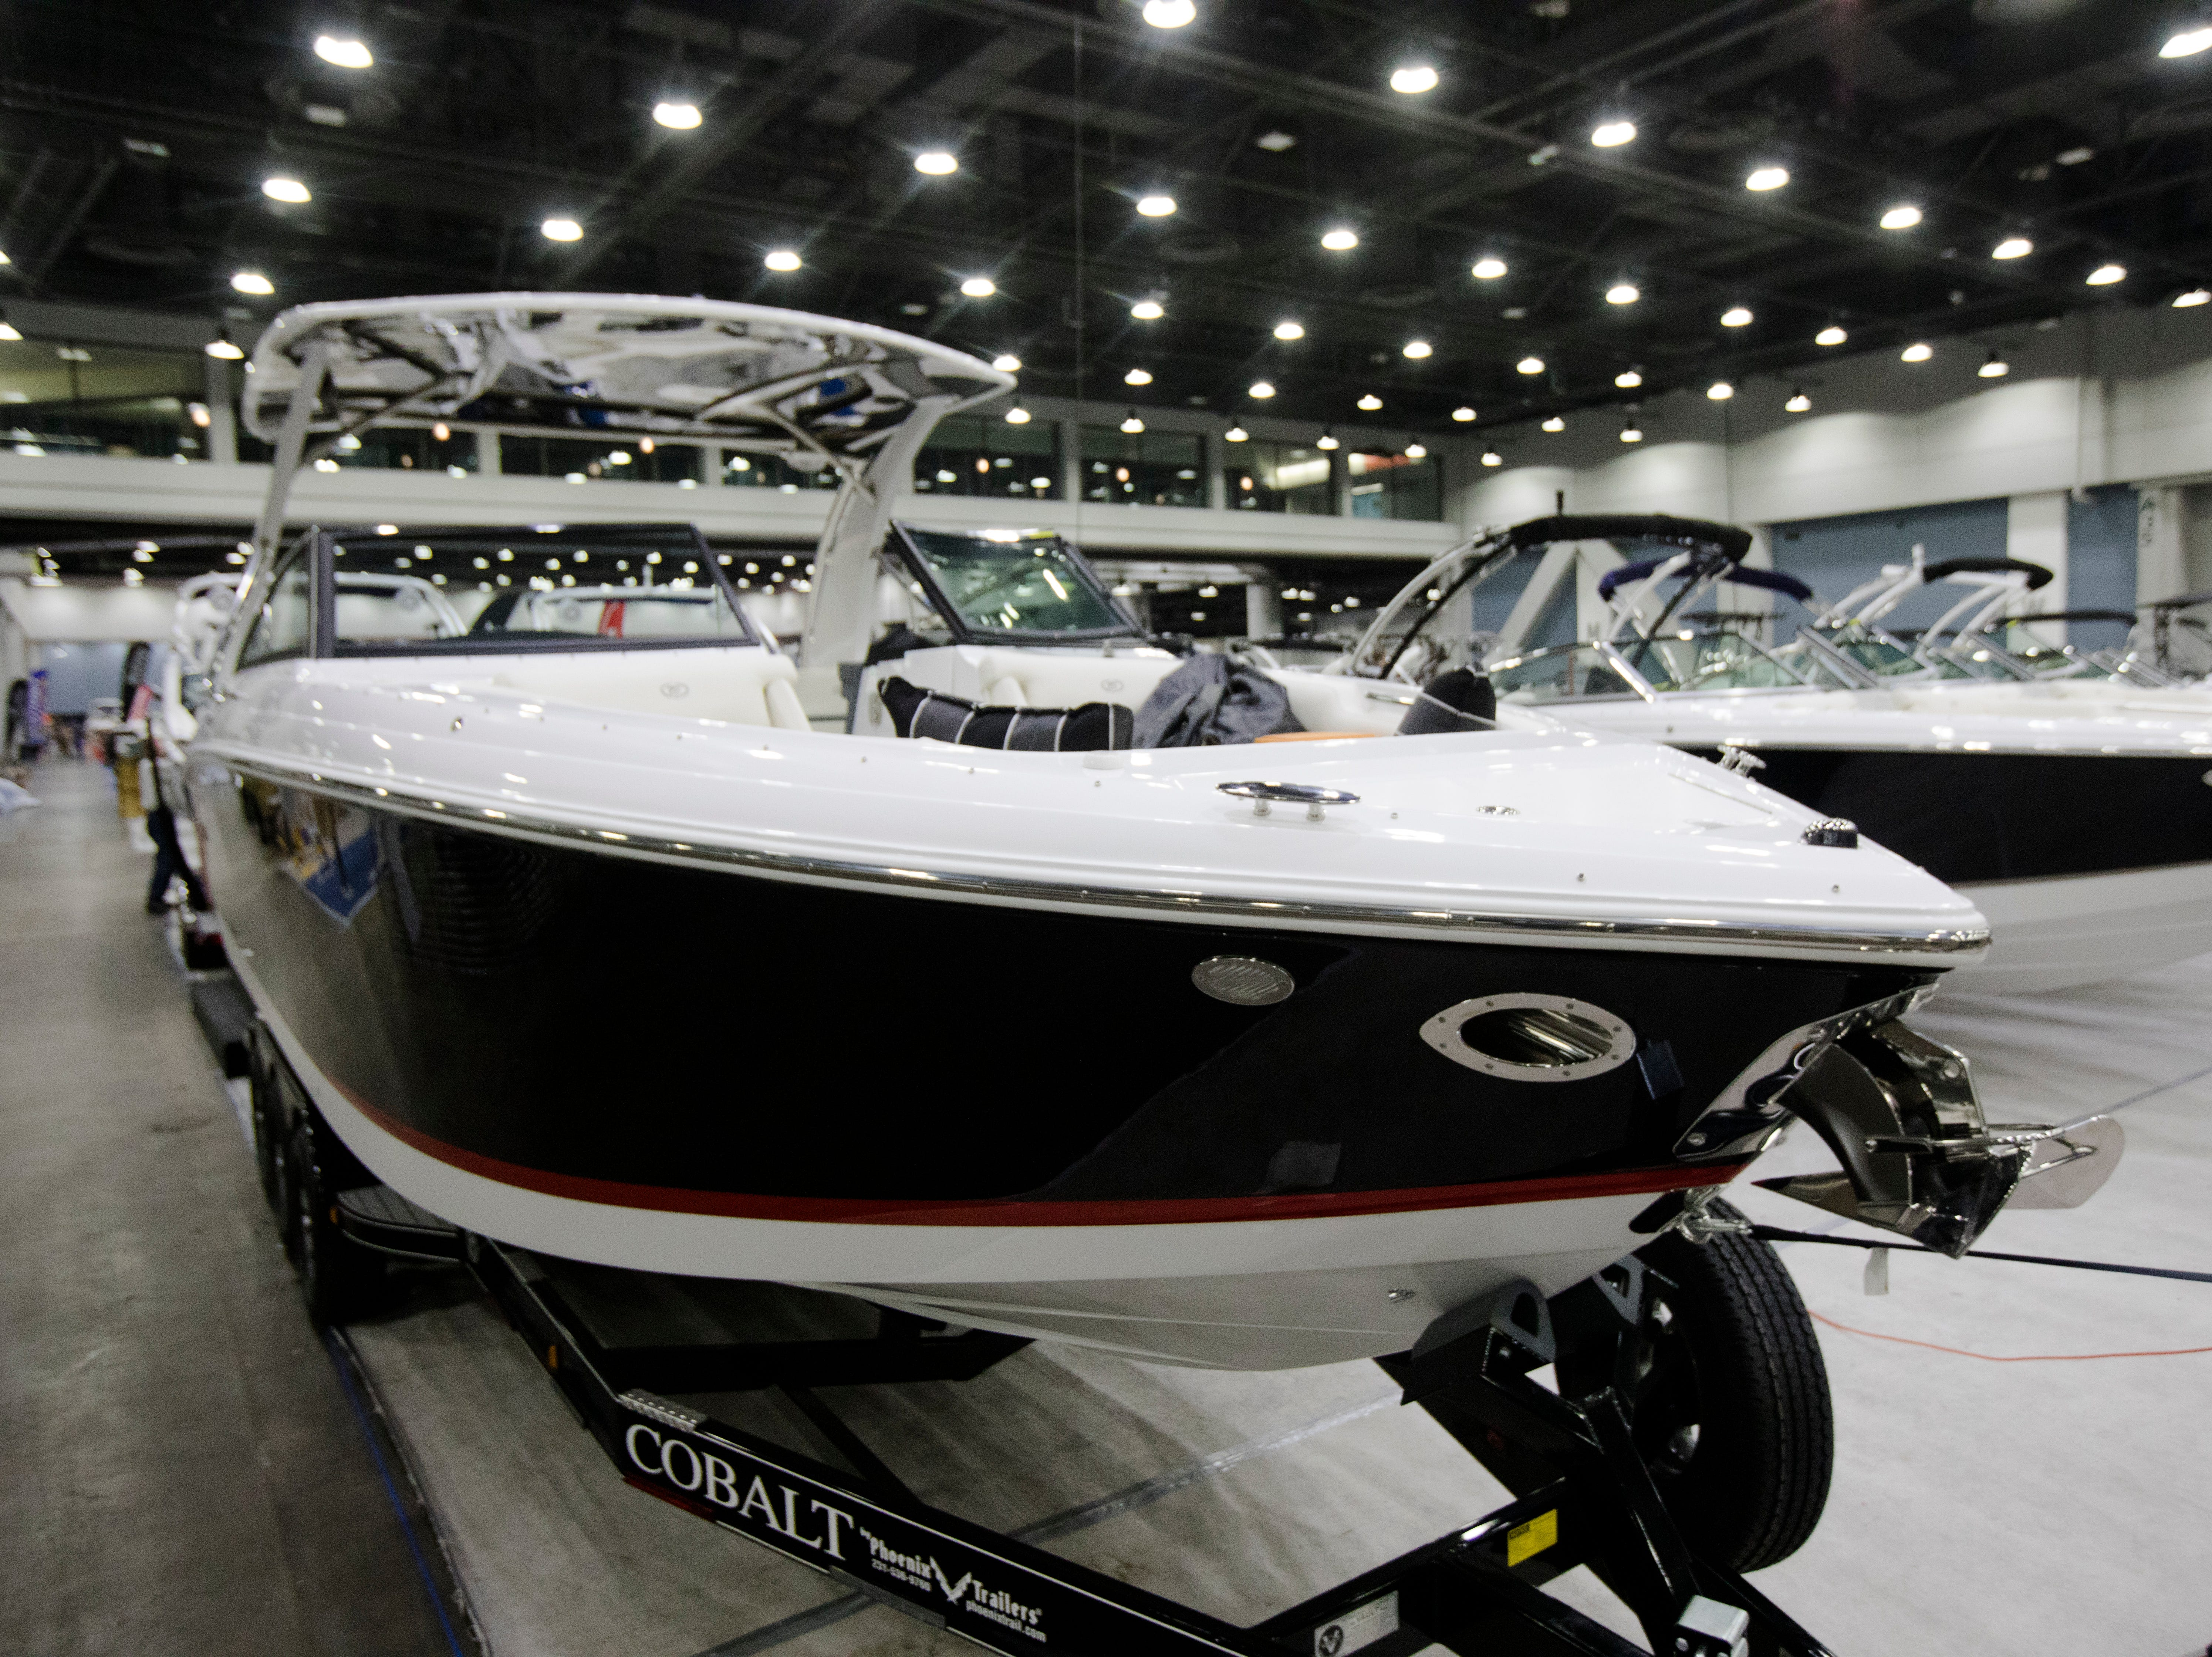 The Cobolt R30 on display at the annual Cincinnati Travel Sports and Boat Show on Wednesday, Jan. 16, 2018 at the Duke Energy Convention Center in Downtown Cincinnati. The Cobolt R30 for sales MSRB price is $310,000 but will be sold at the boat show for $252,000.